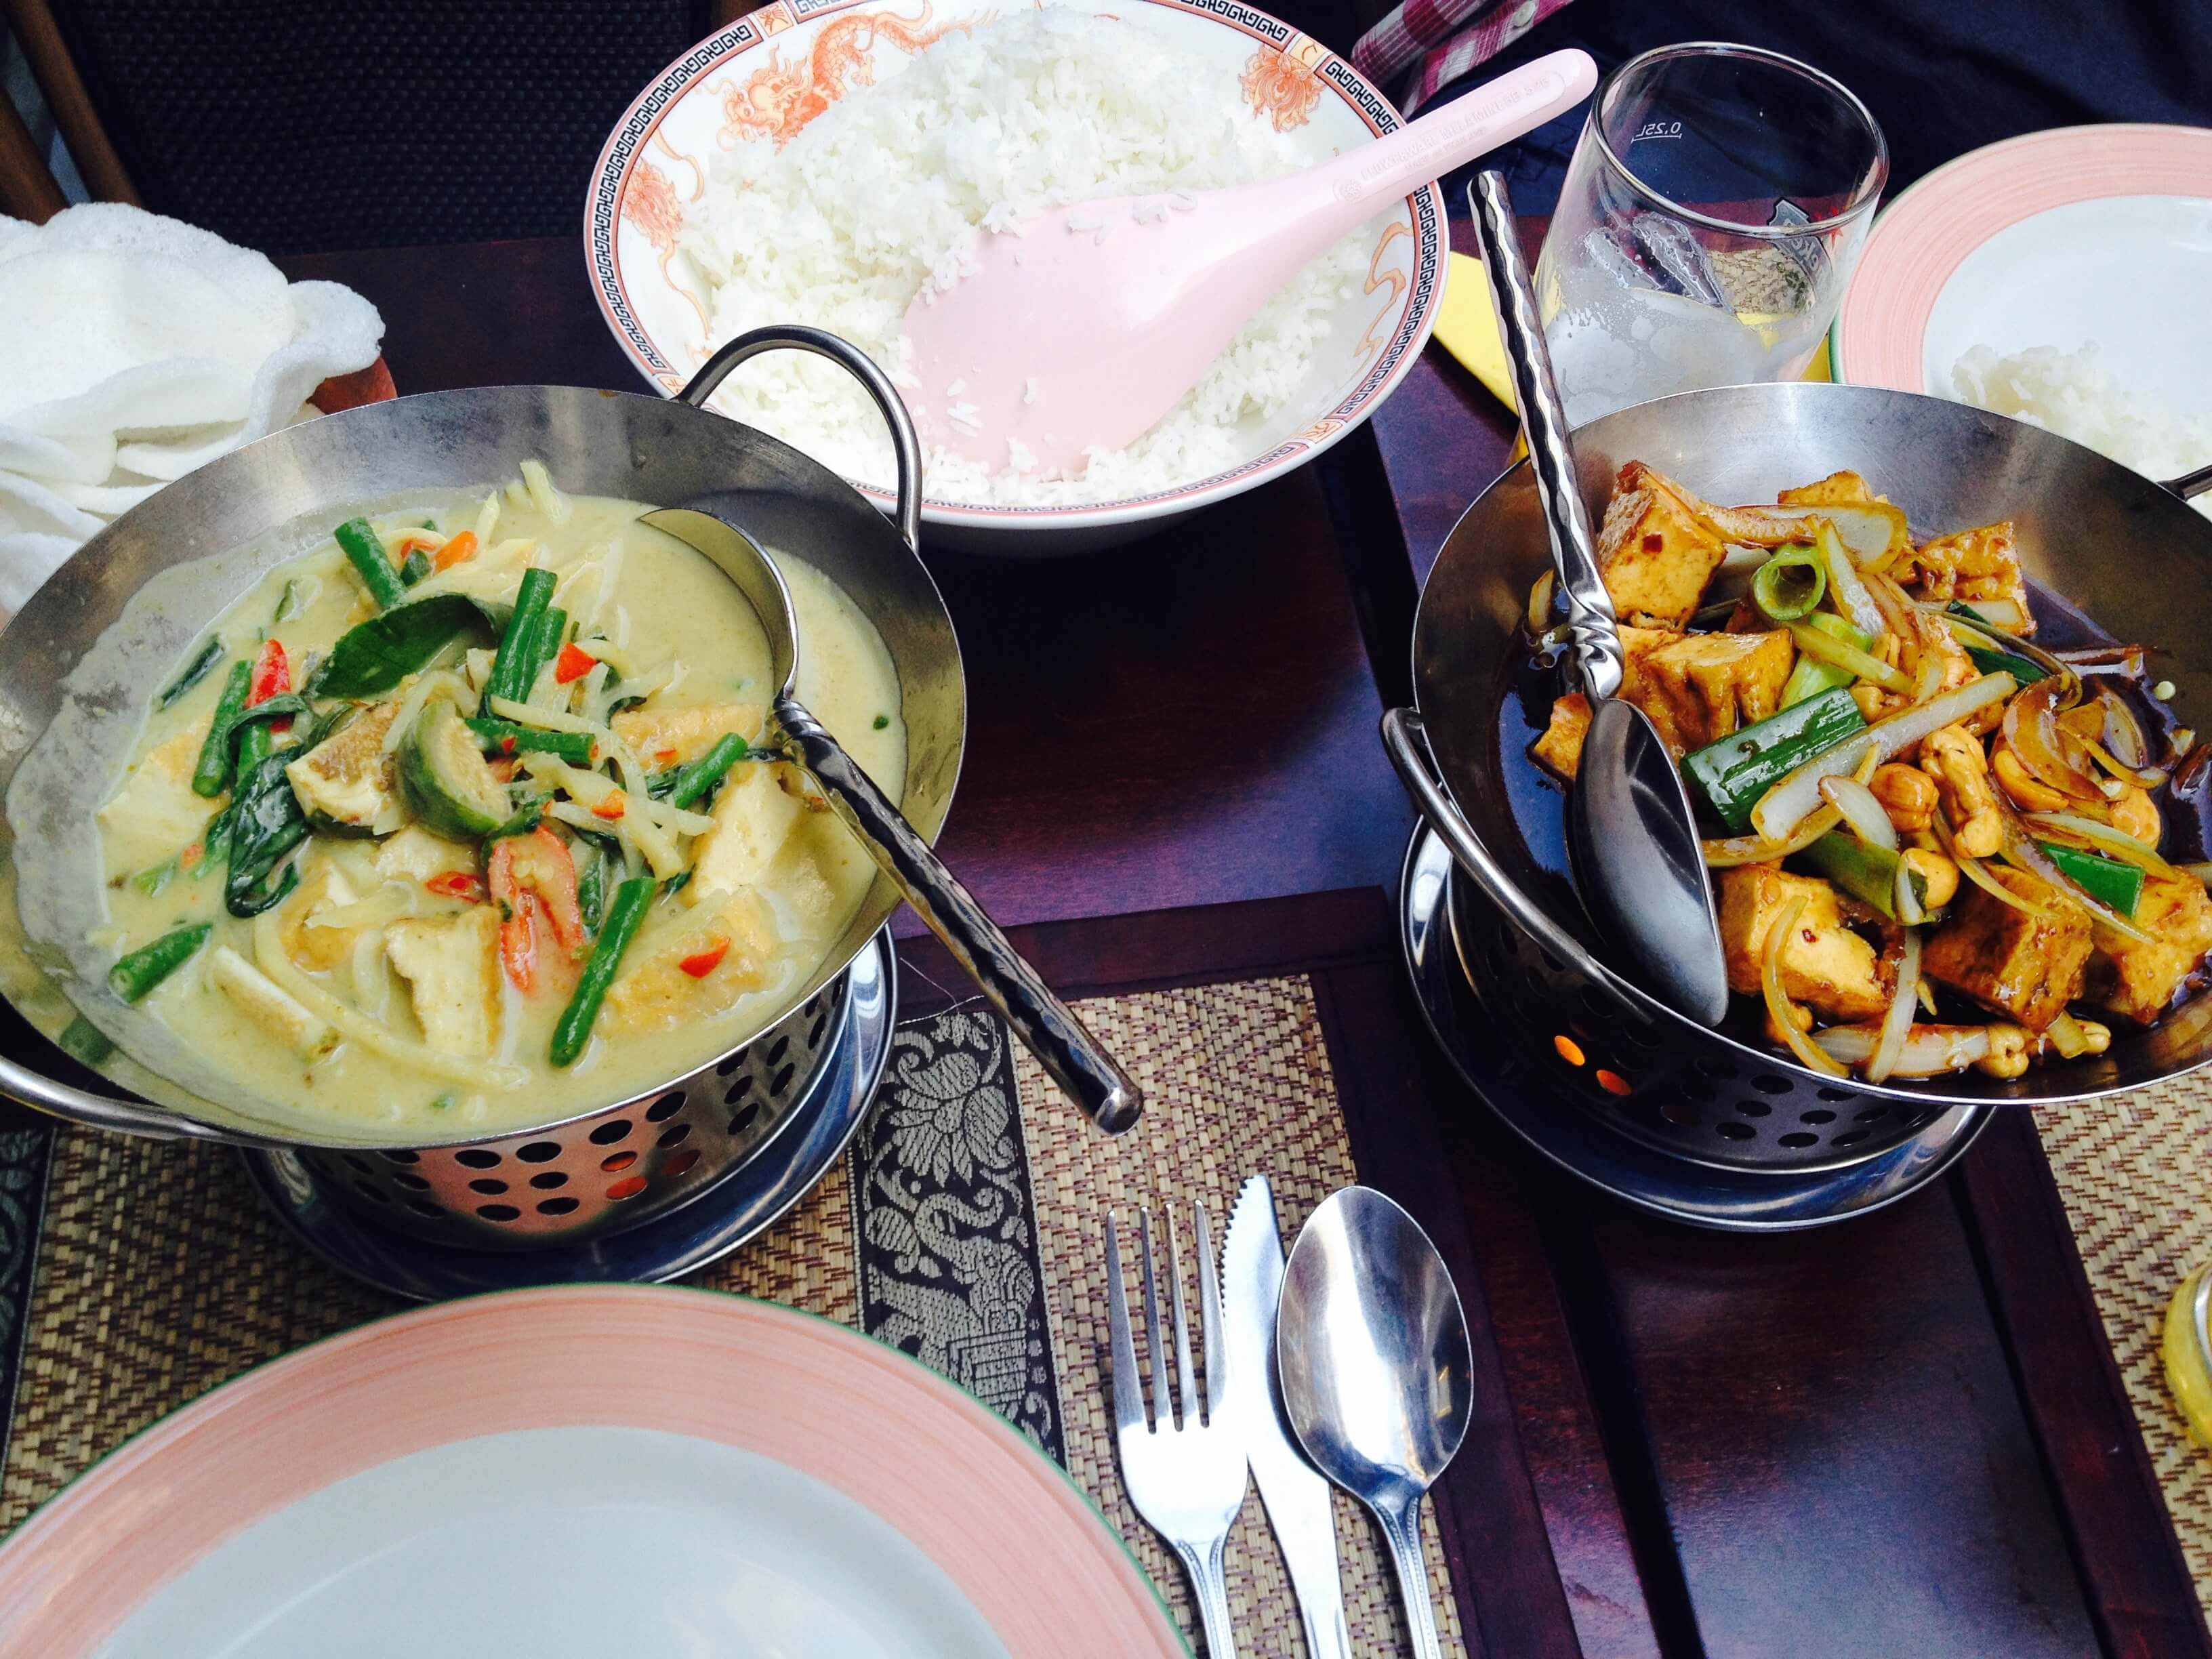 Green curry with coconut milk and vegetables (left) and tofu with cashews in a sweet sauce from Thai Phutakun.